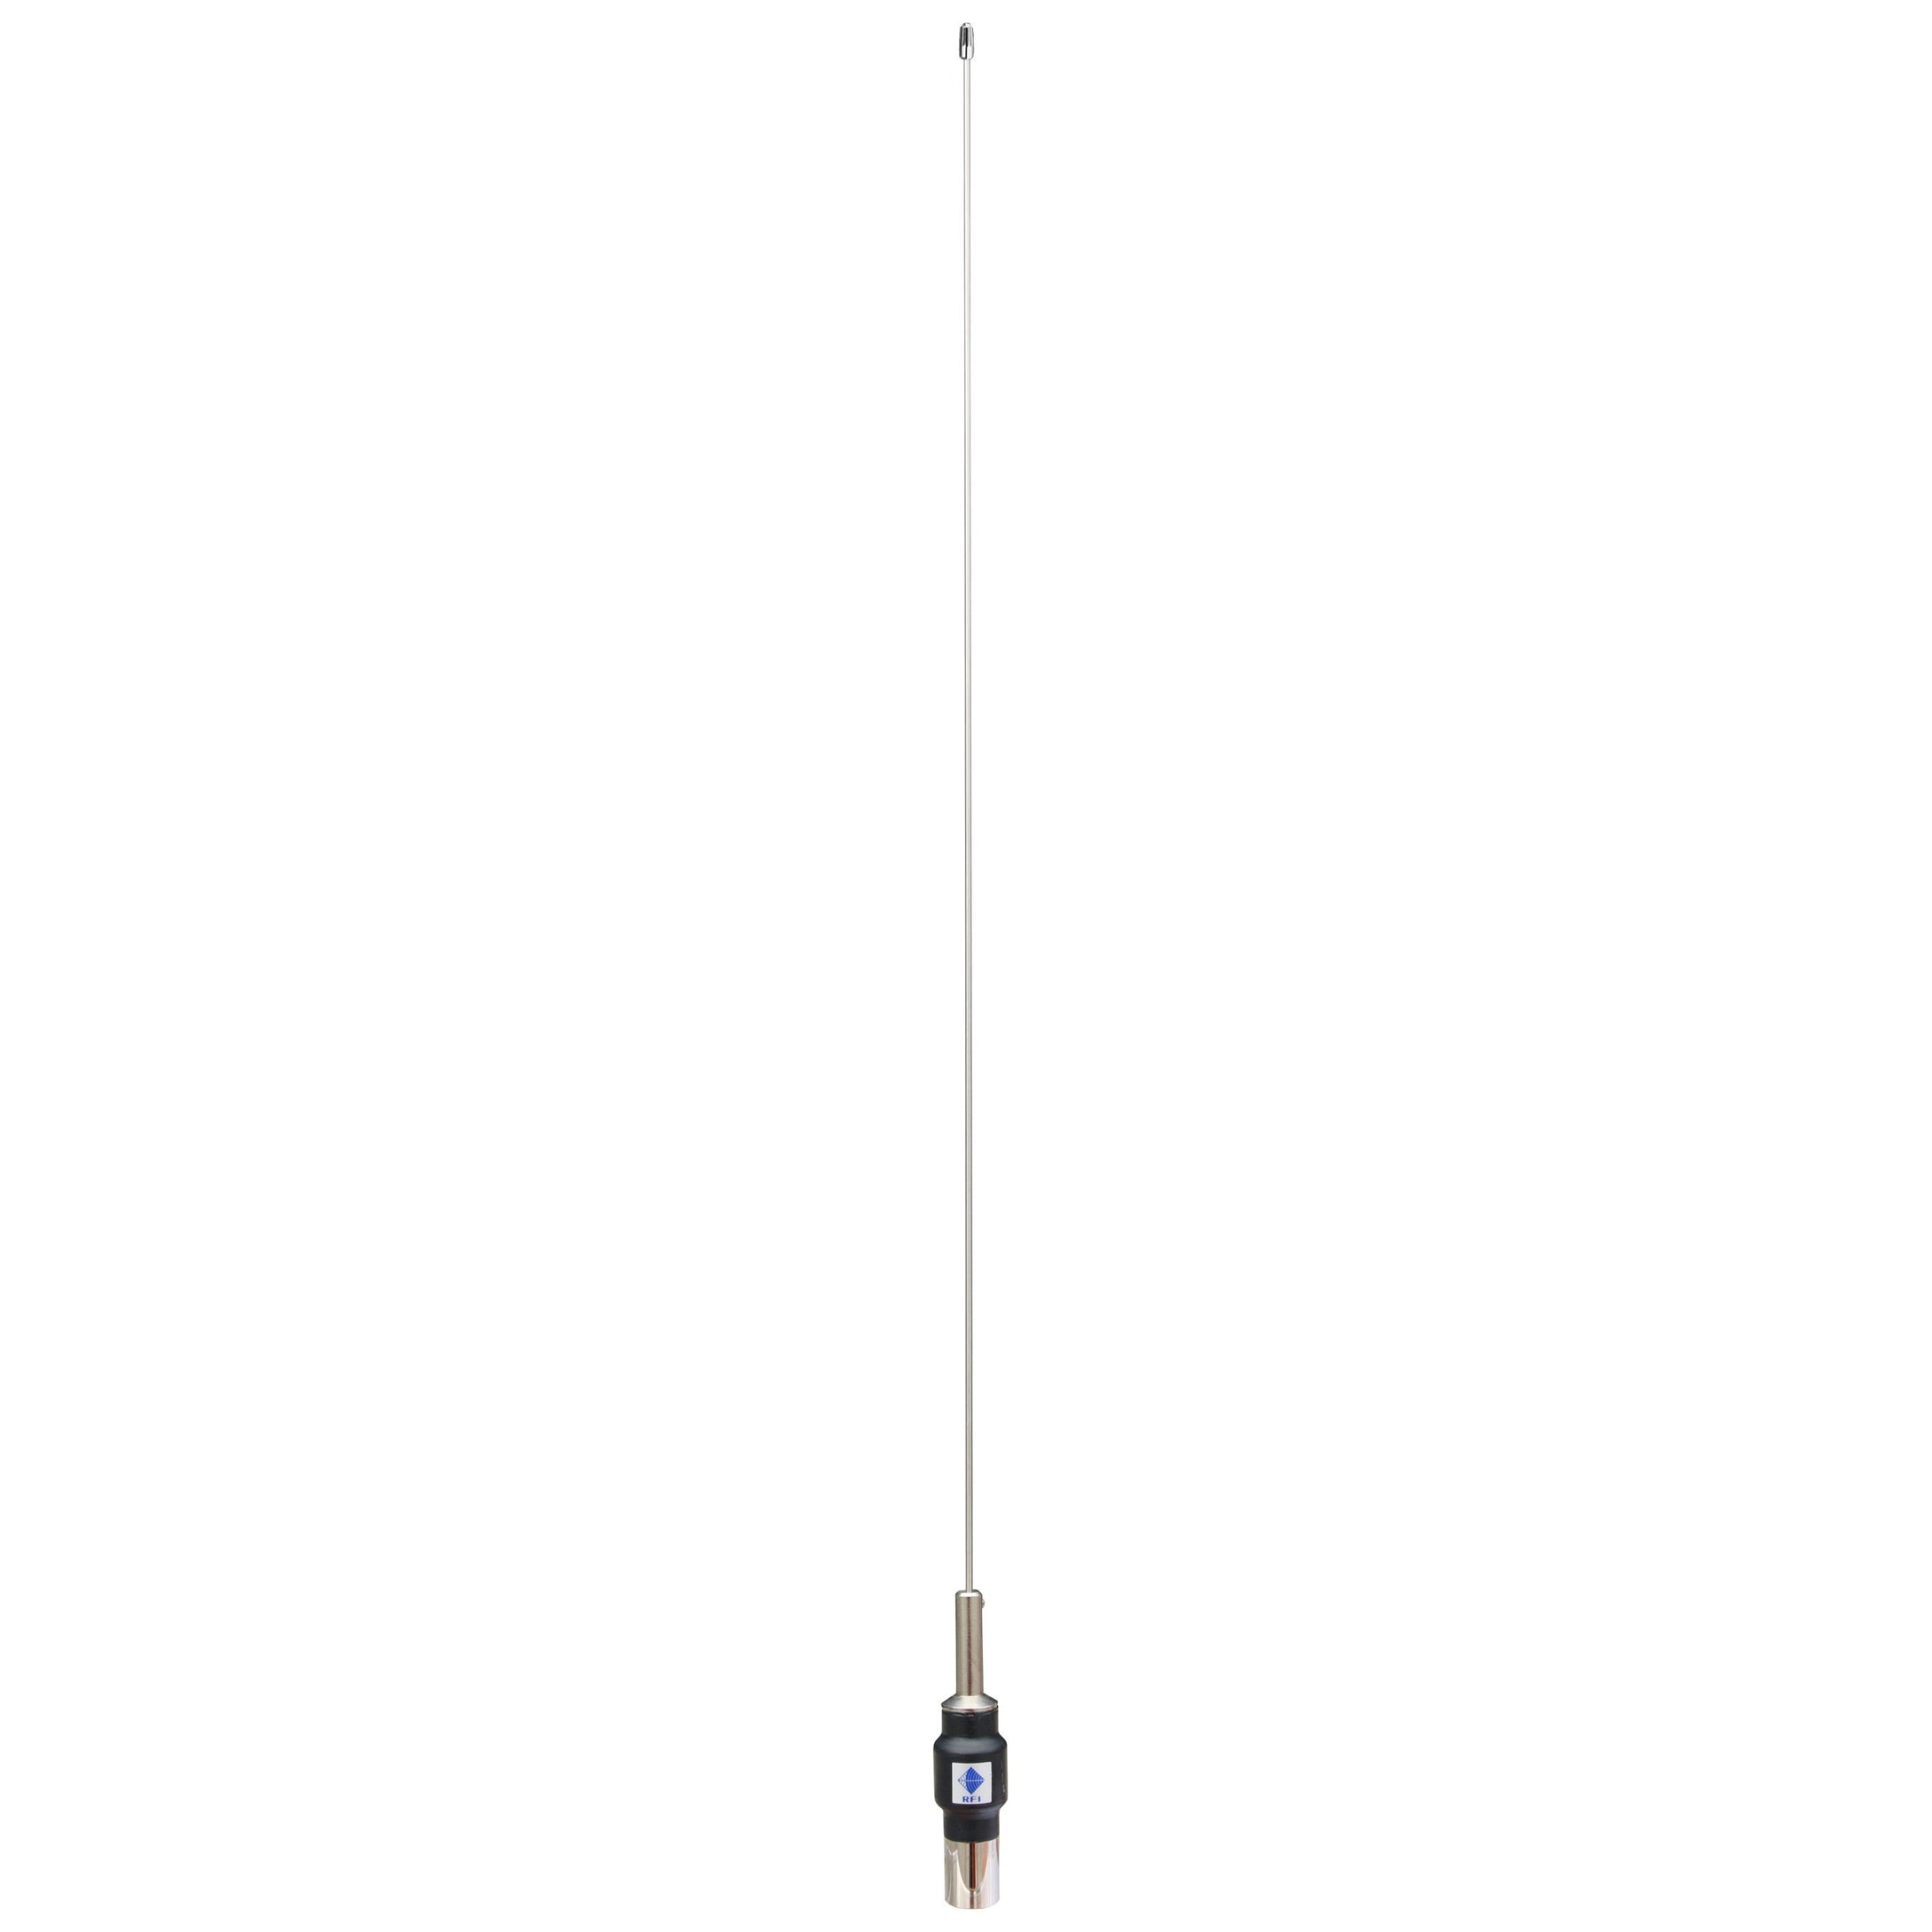 RFI CD28-41-70 VHF Ground Independent Mopole 148 - 175 MHZ - Threaded Stud - No cable - Point to Point Distributions